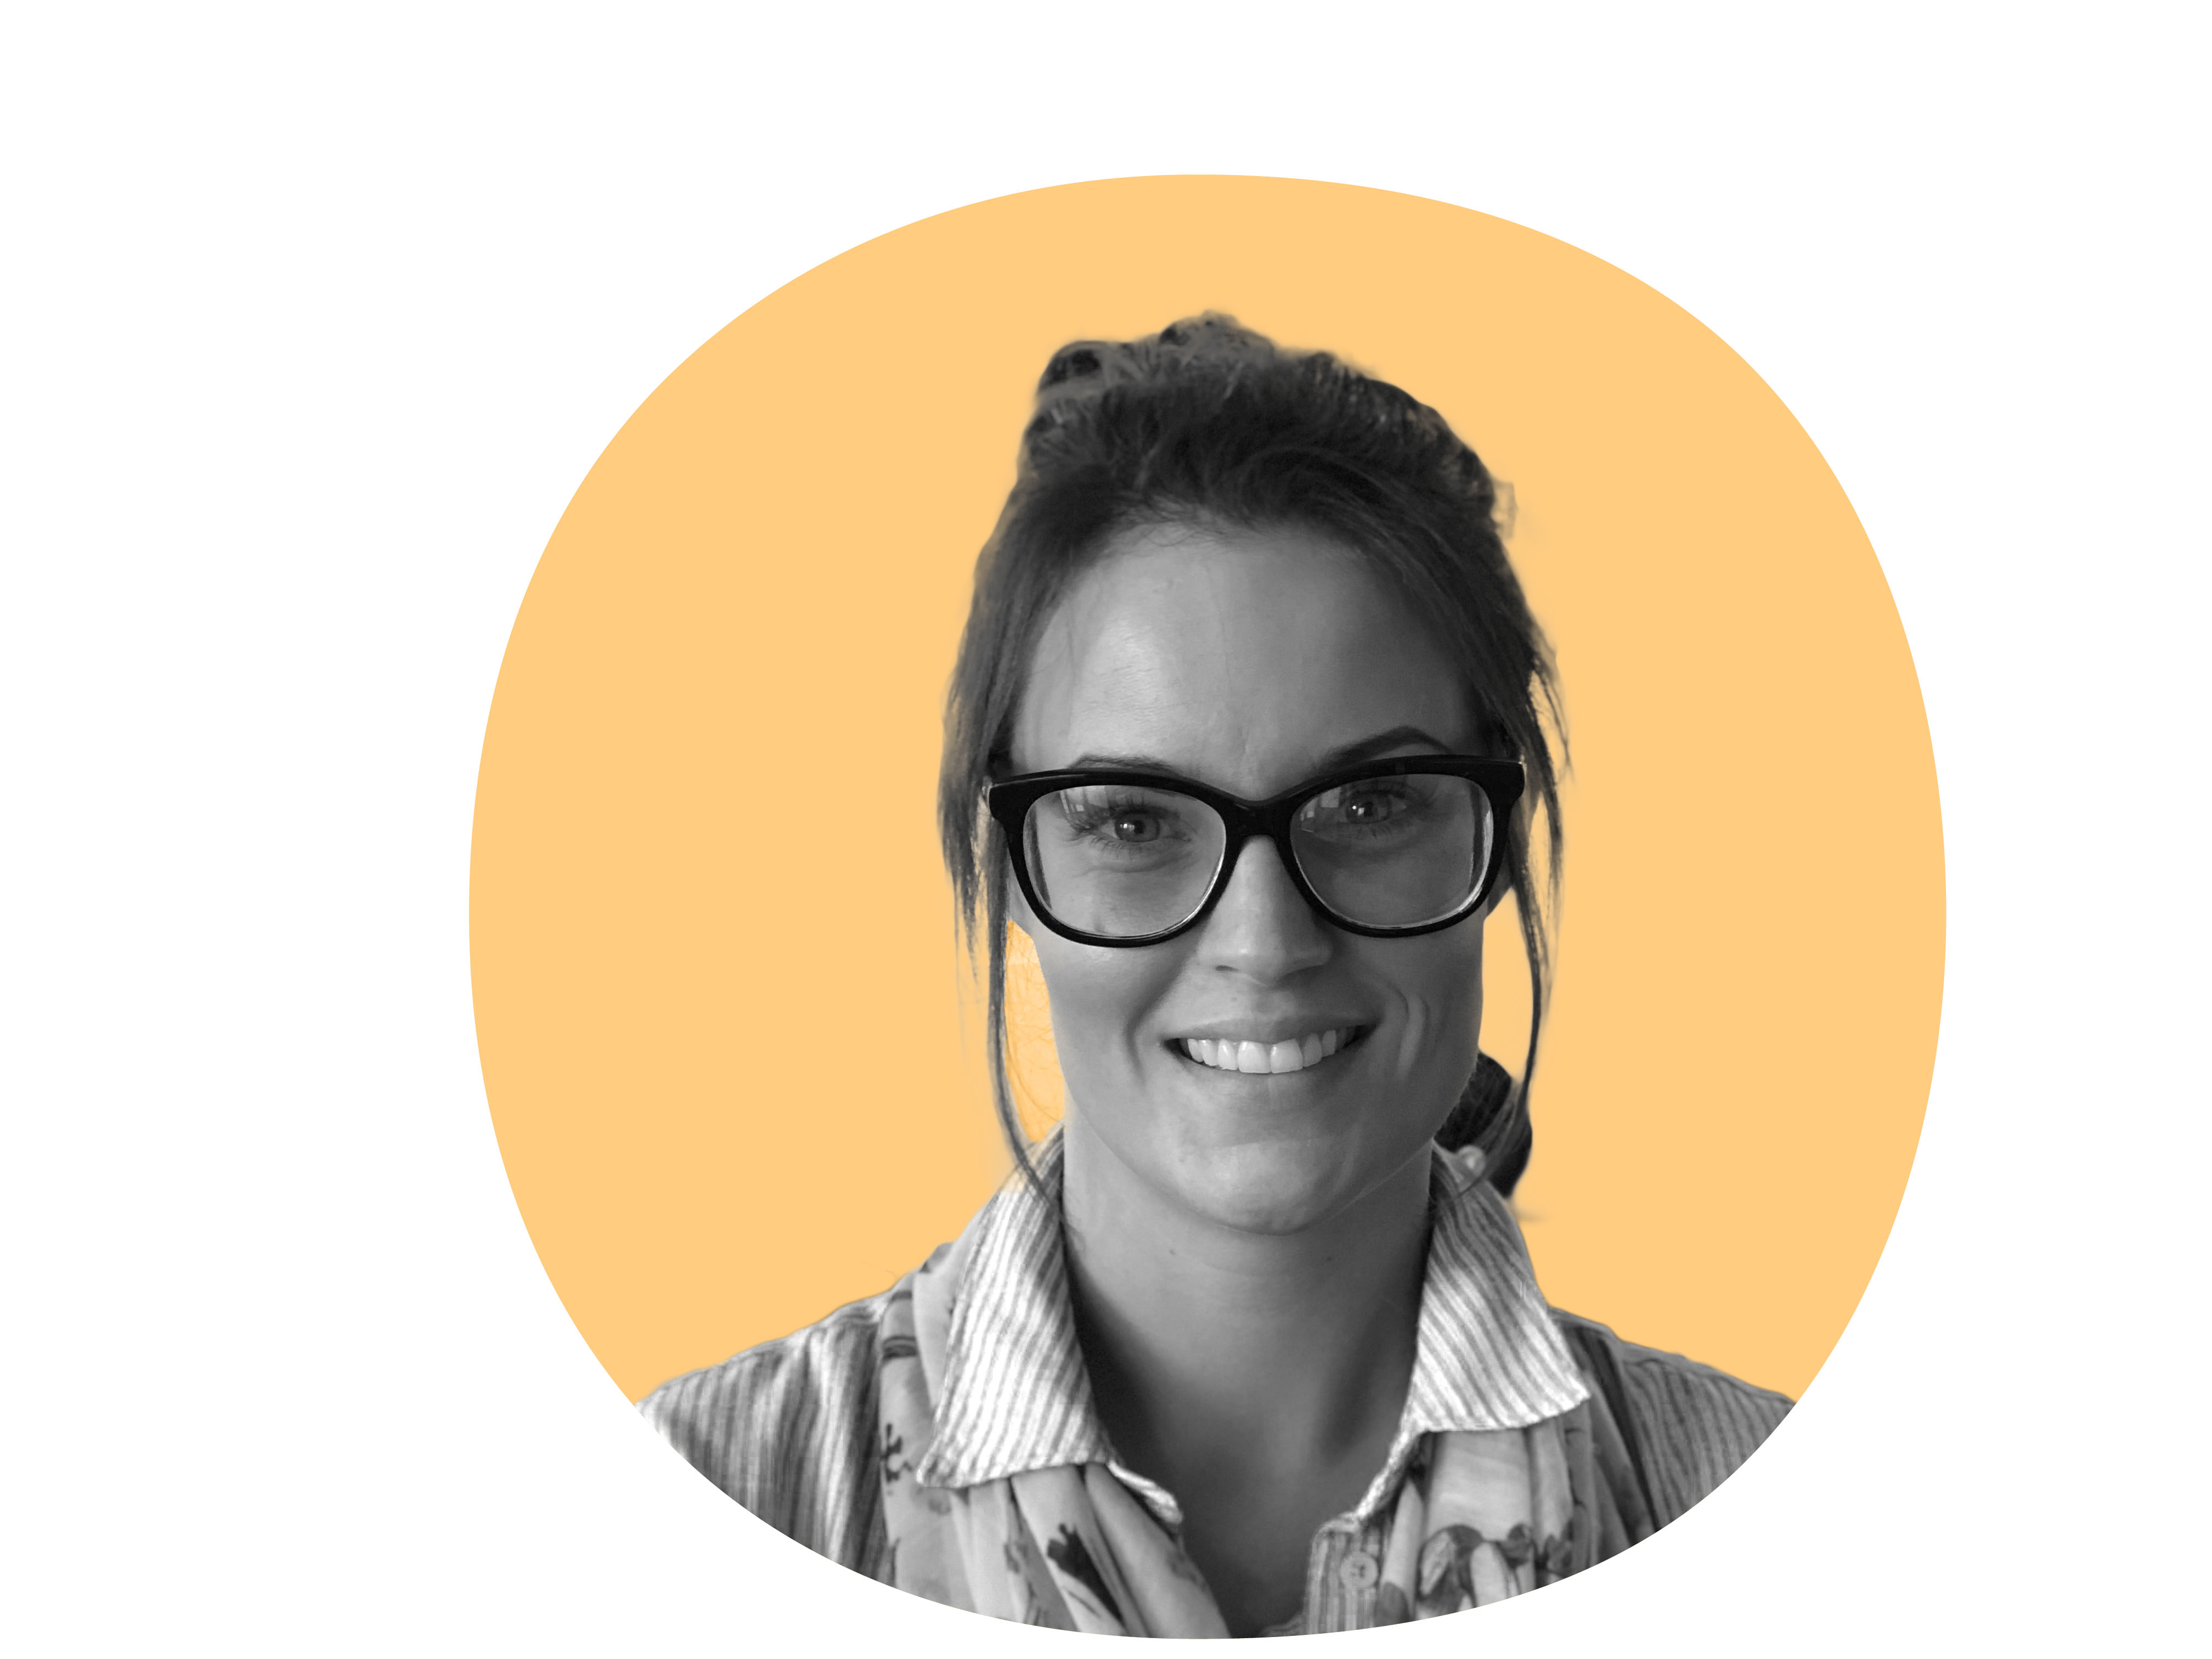 Meet the Team Monday: What's it like to be Head of Marketing at Zymplify?